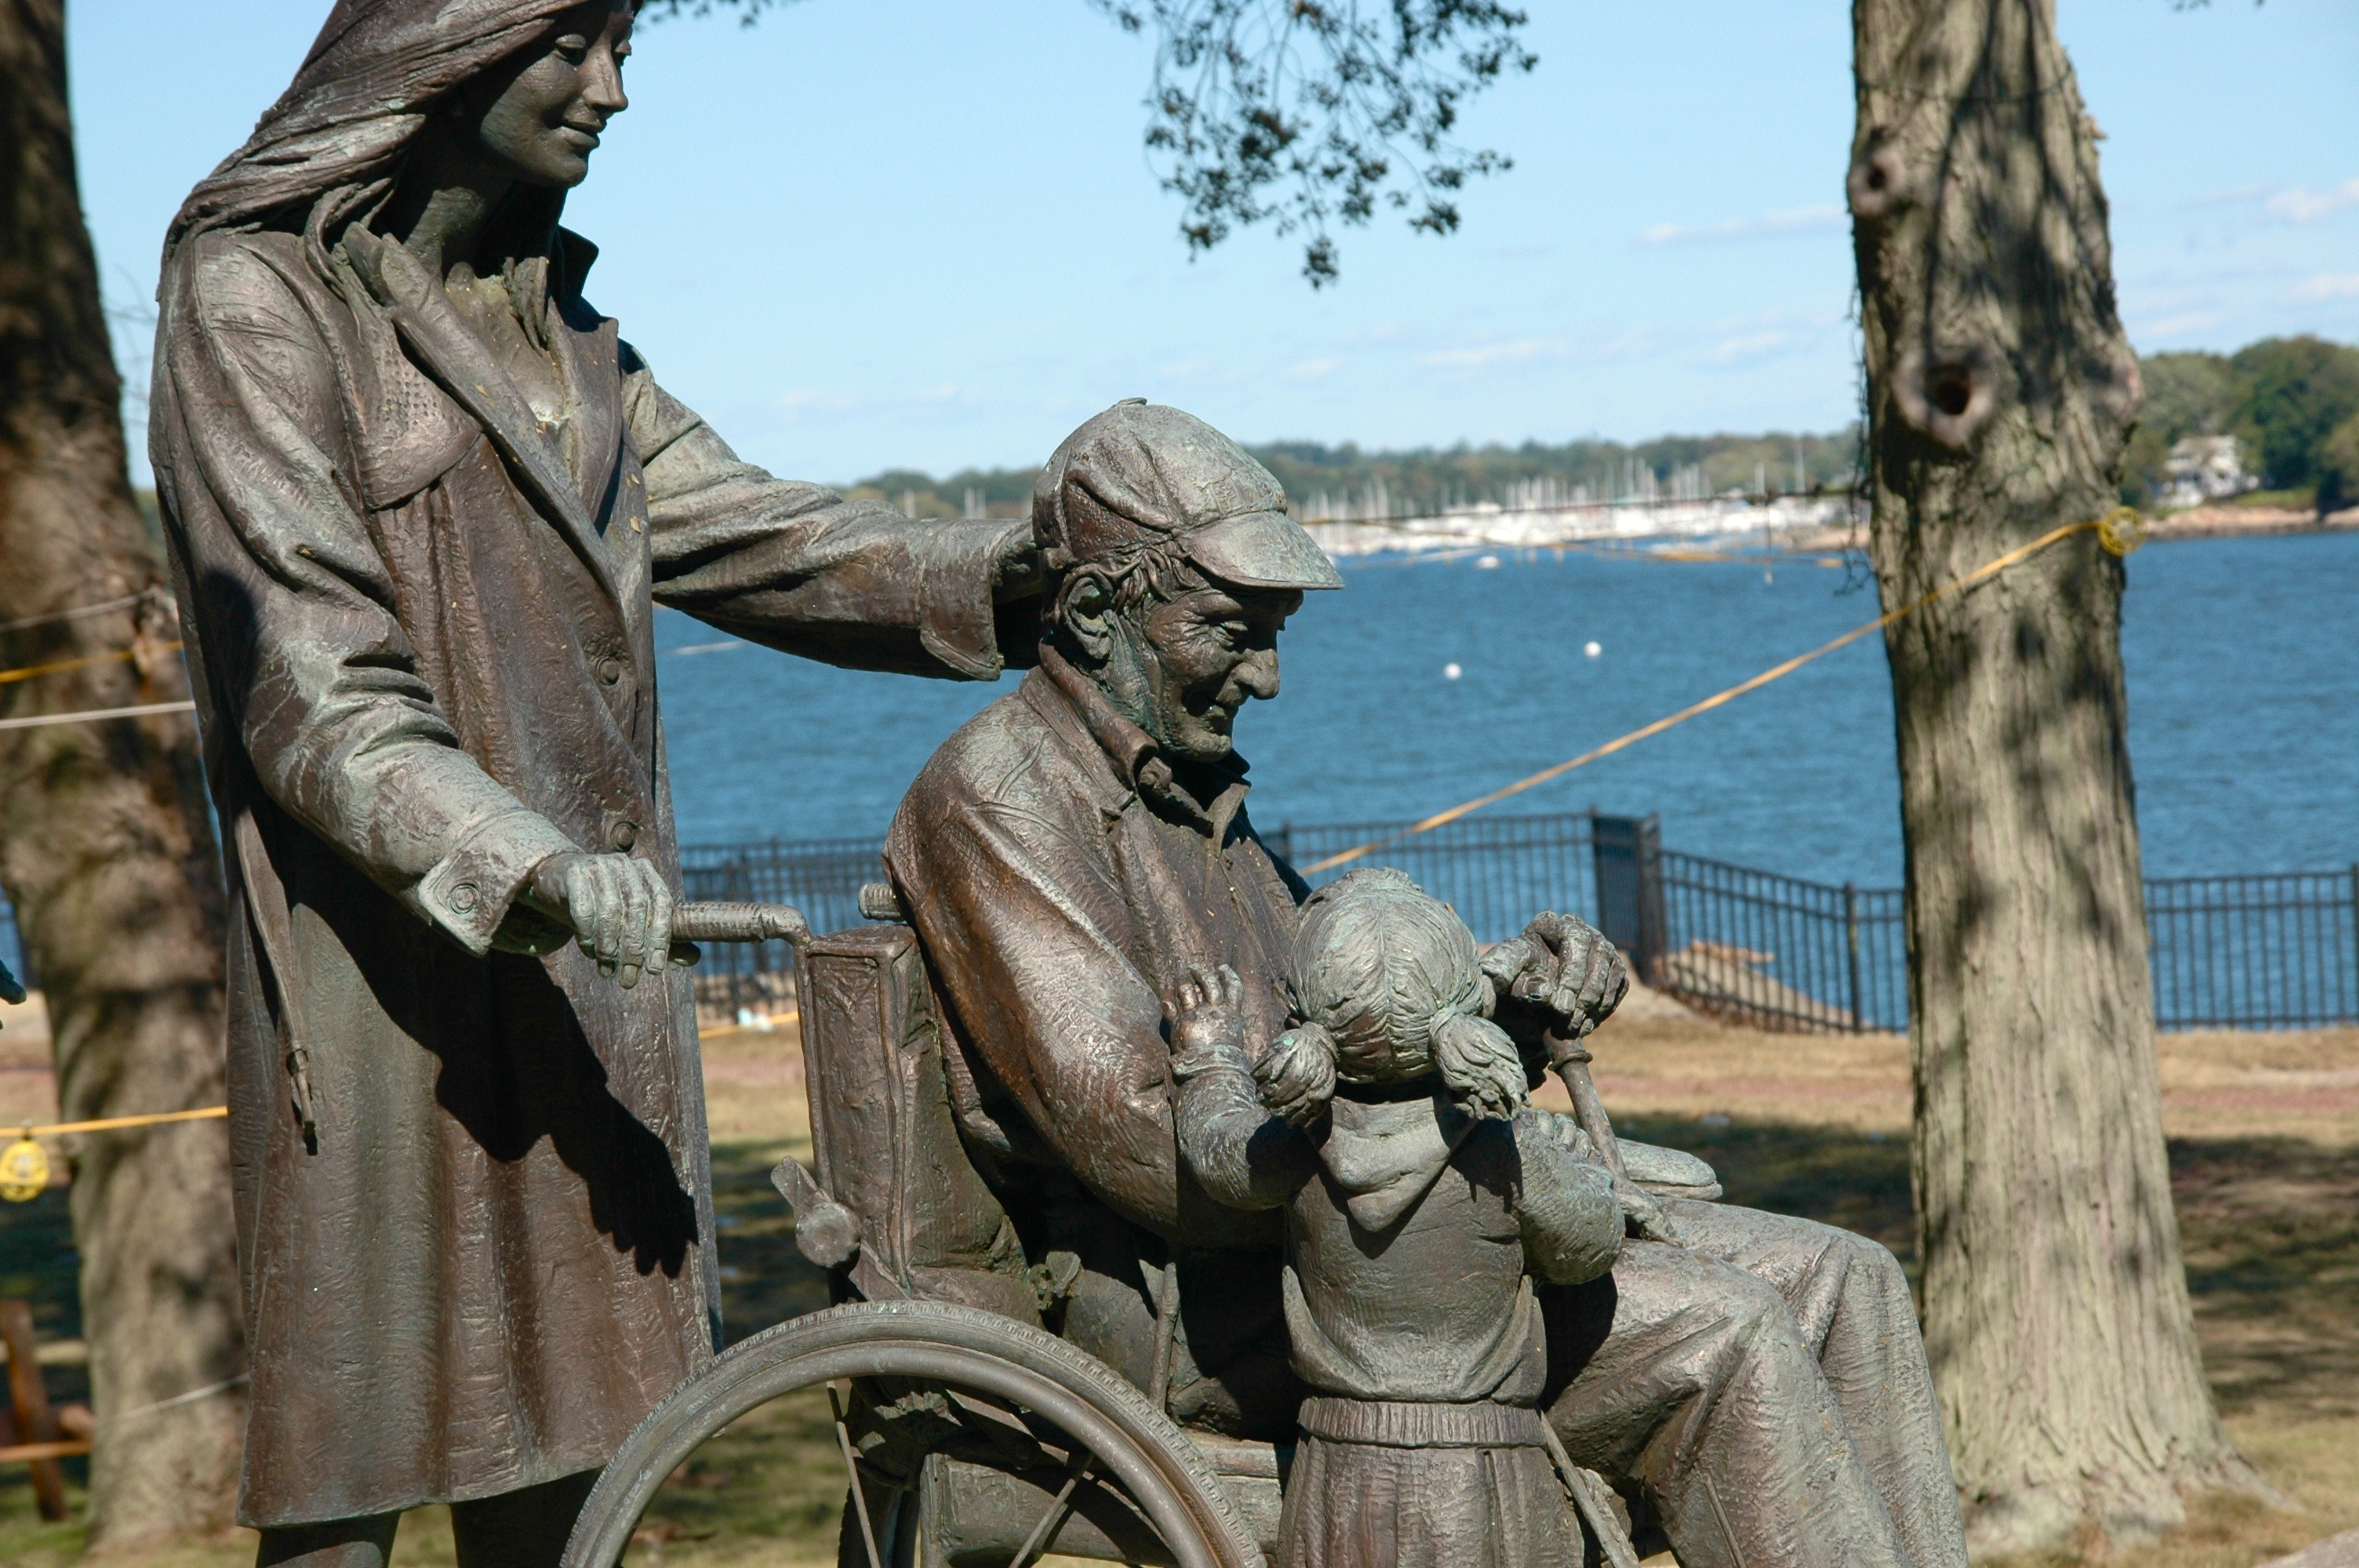 A statue outside Connecticut Hospice of an elderly man, surrounded by family and love.